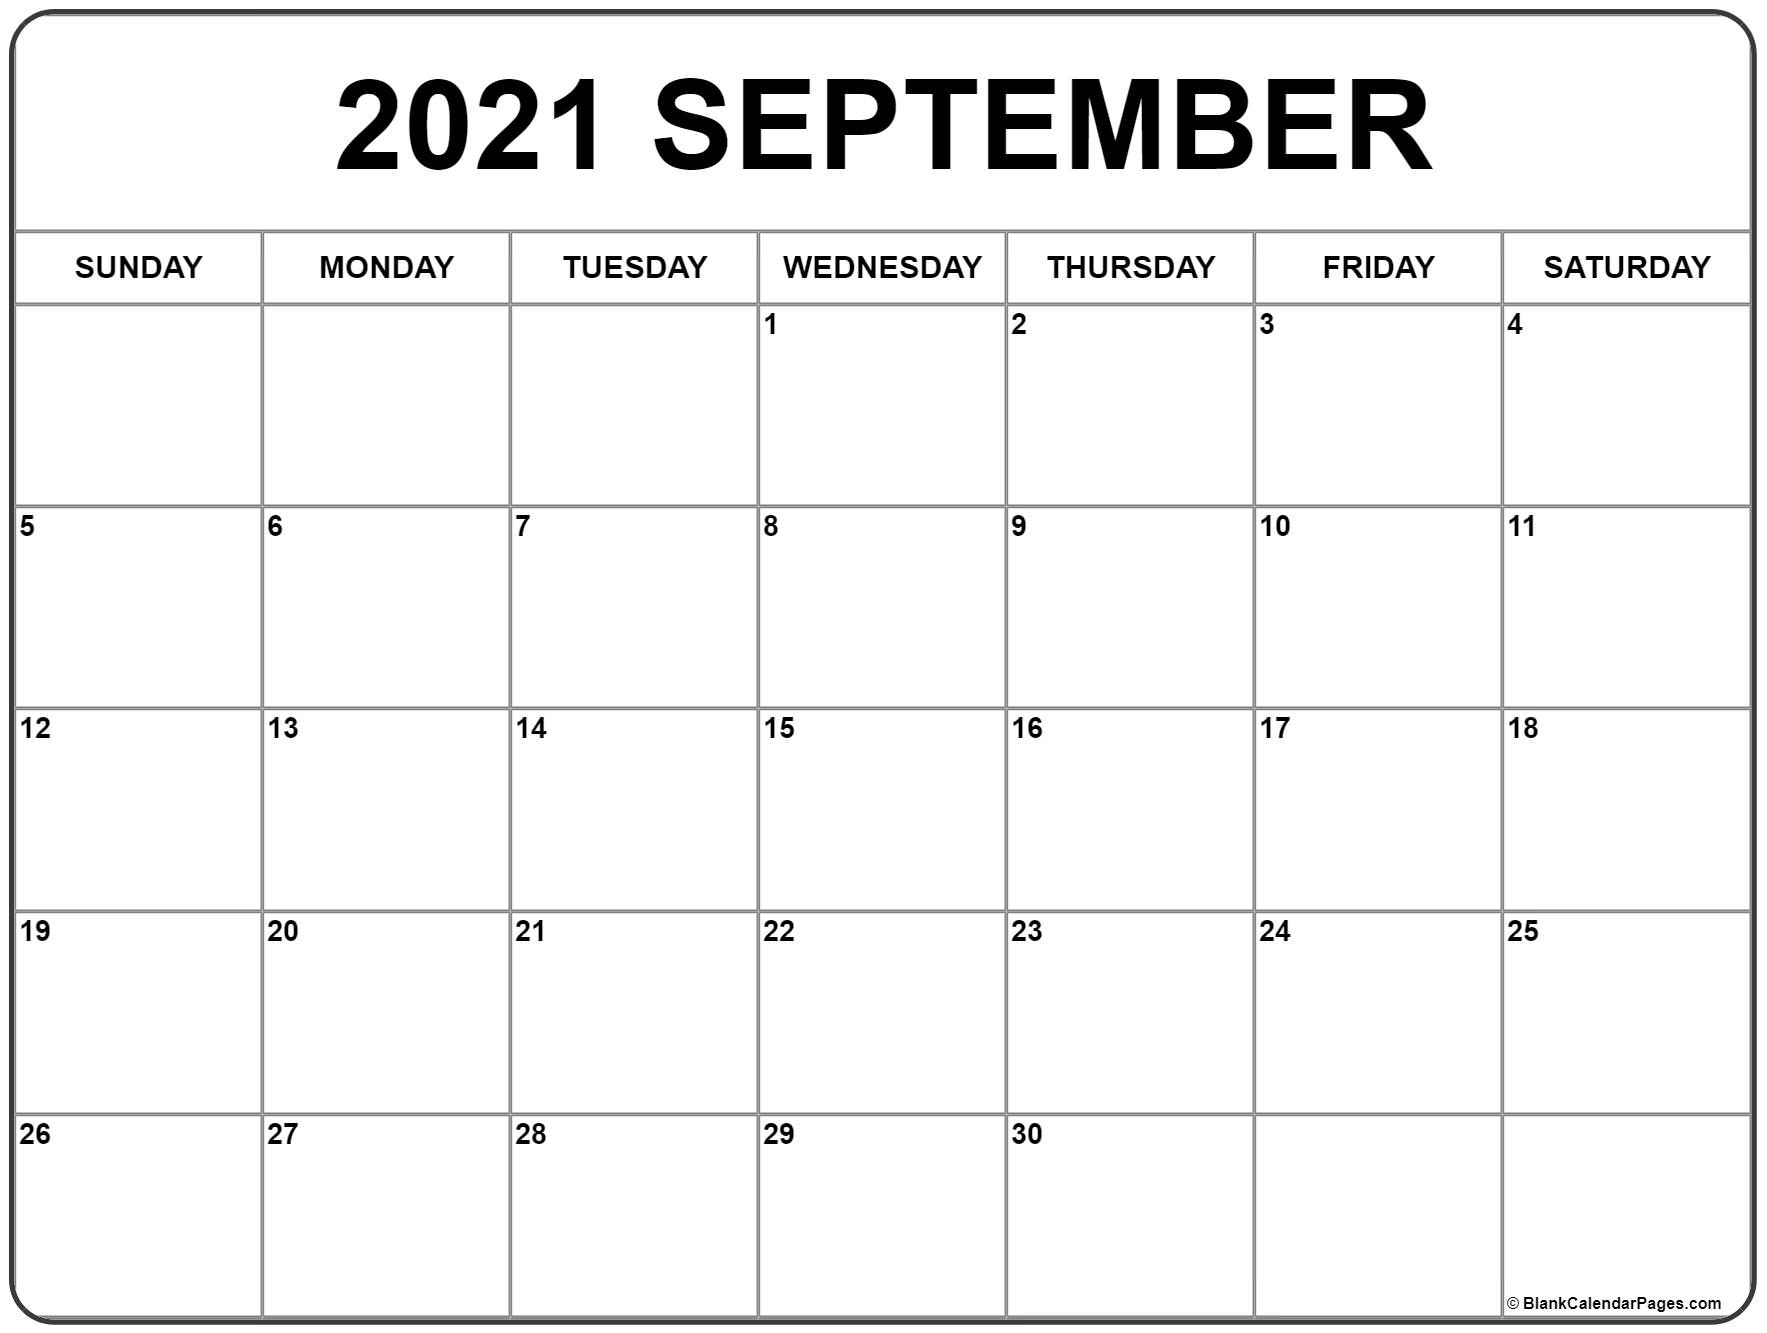 Take September 2021 Calendar Printable Images